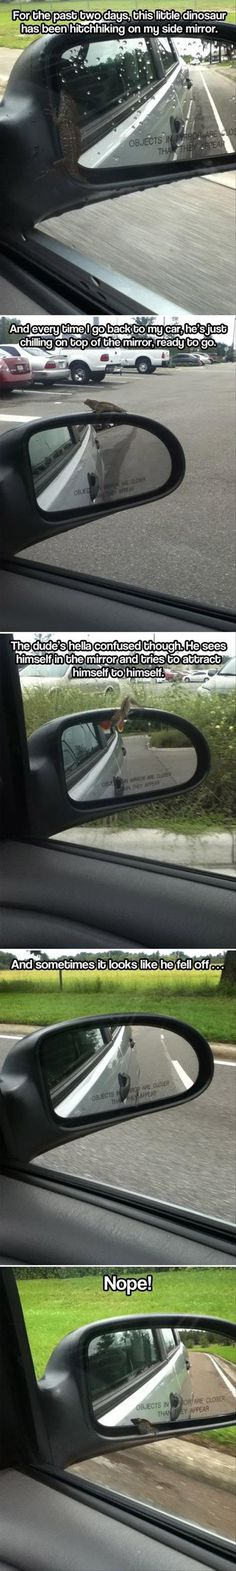 hitchiking lizard lives in your mirror